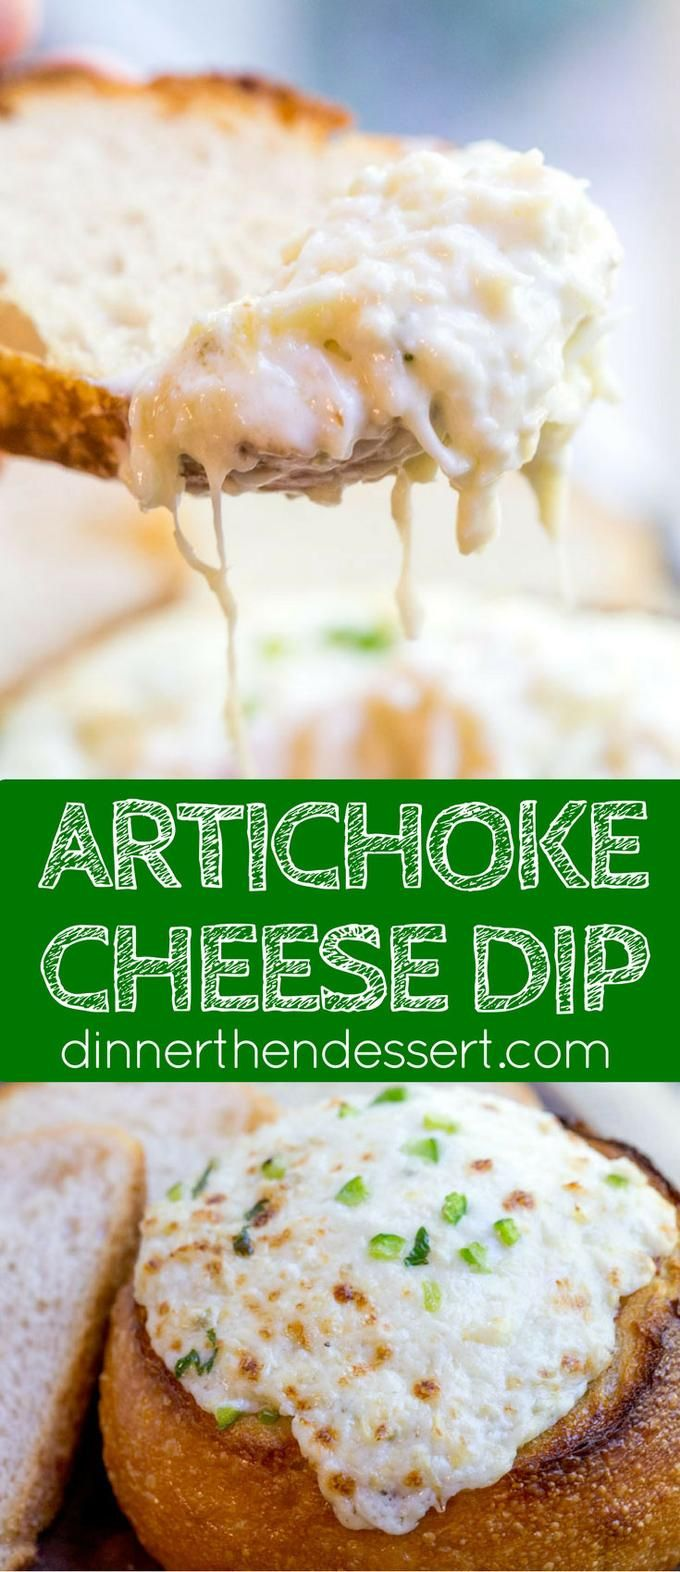 Artichoke Cheese Dip takes five minutes of prep and full of artichokes, Parmesan and cream cheese that is baked in…